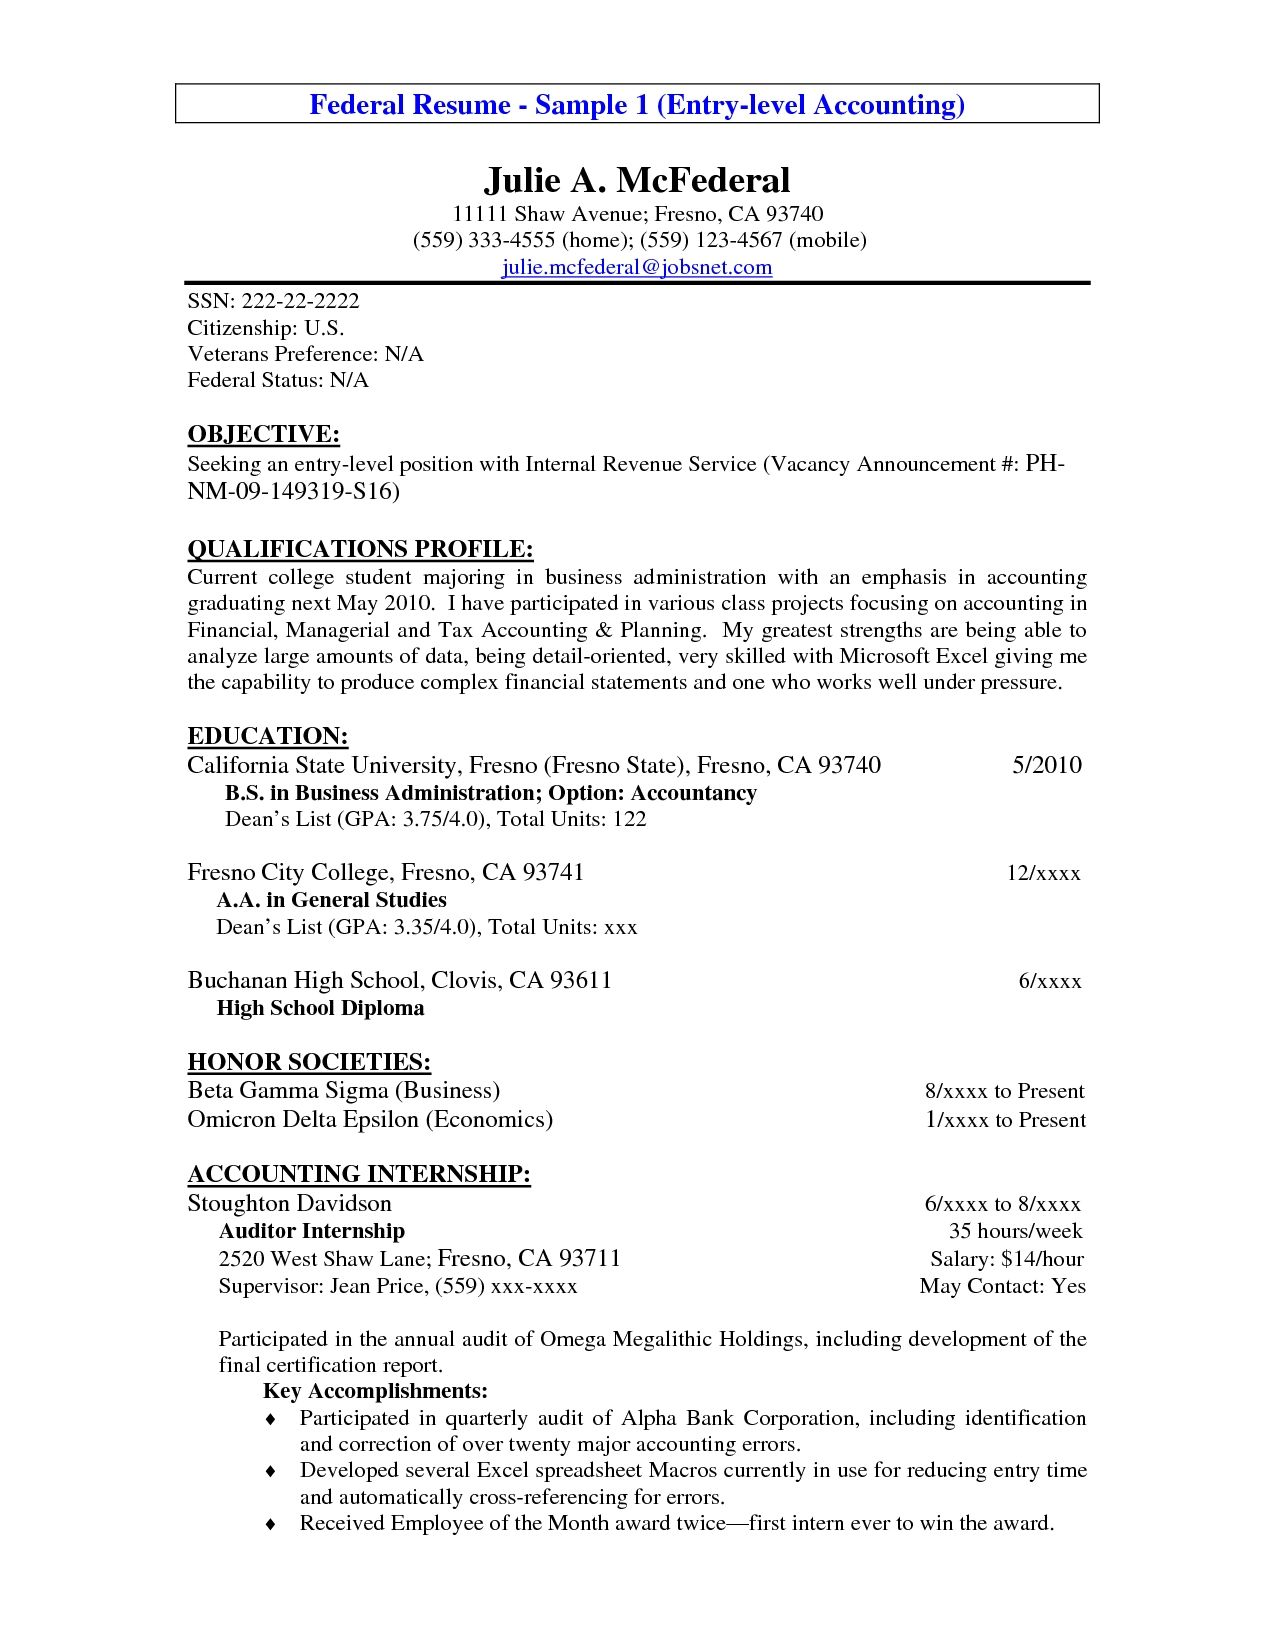 Free Cover Letter And Resume Builder How Make Good Entry Level Example  Accounting Sample Gallery Photos  Veteran Resume Builder